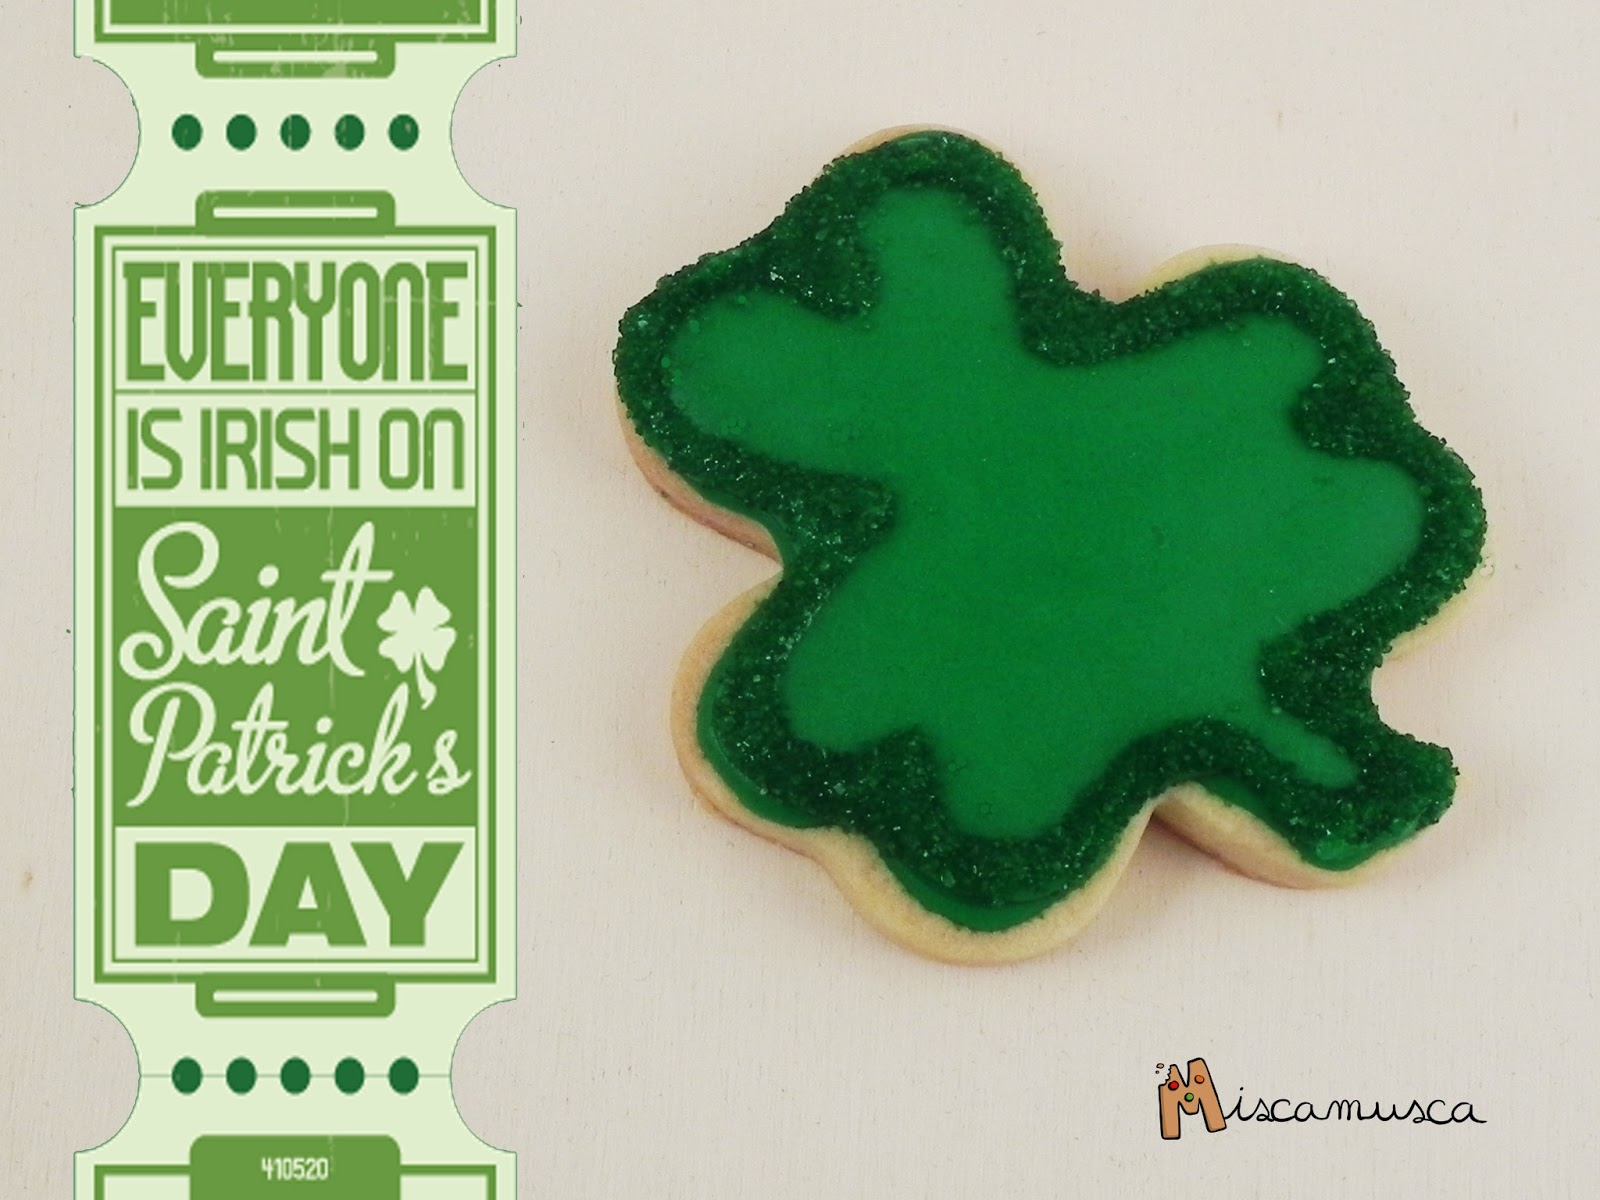 Galleta decorada trébol San Patricio